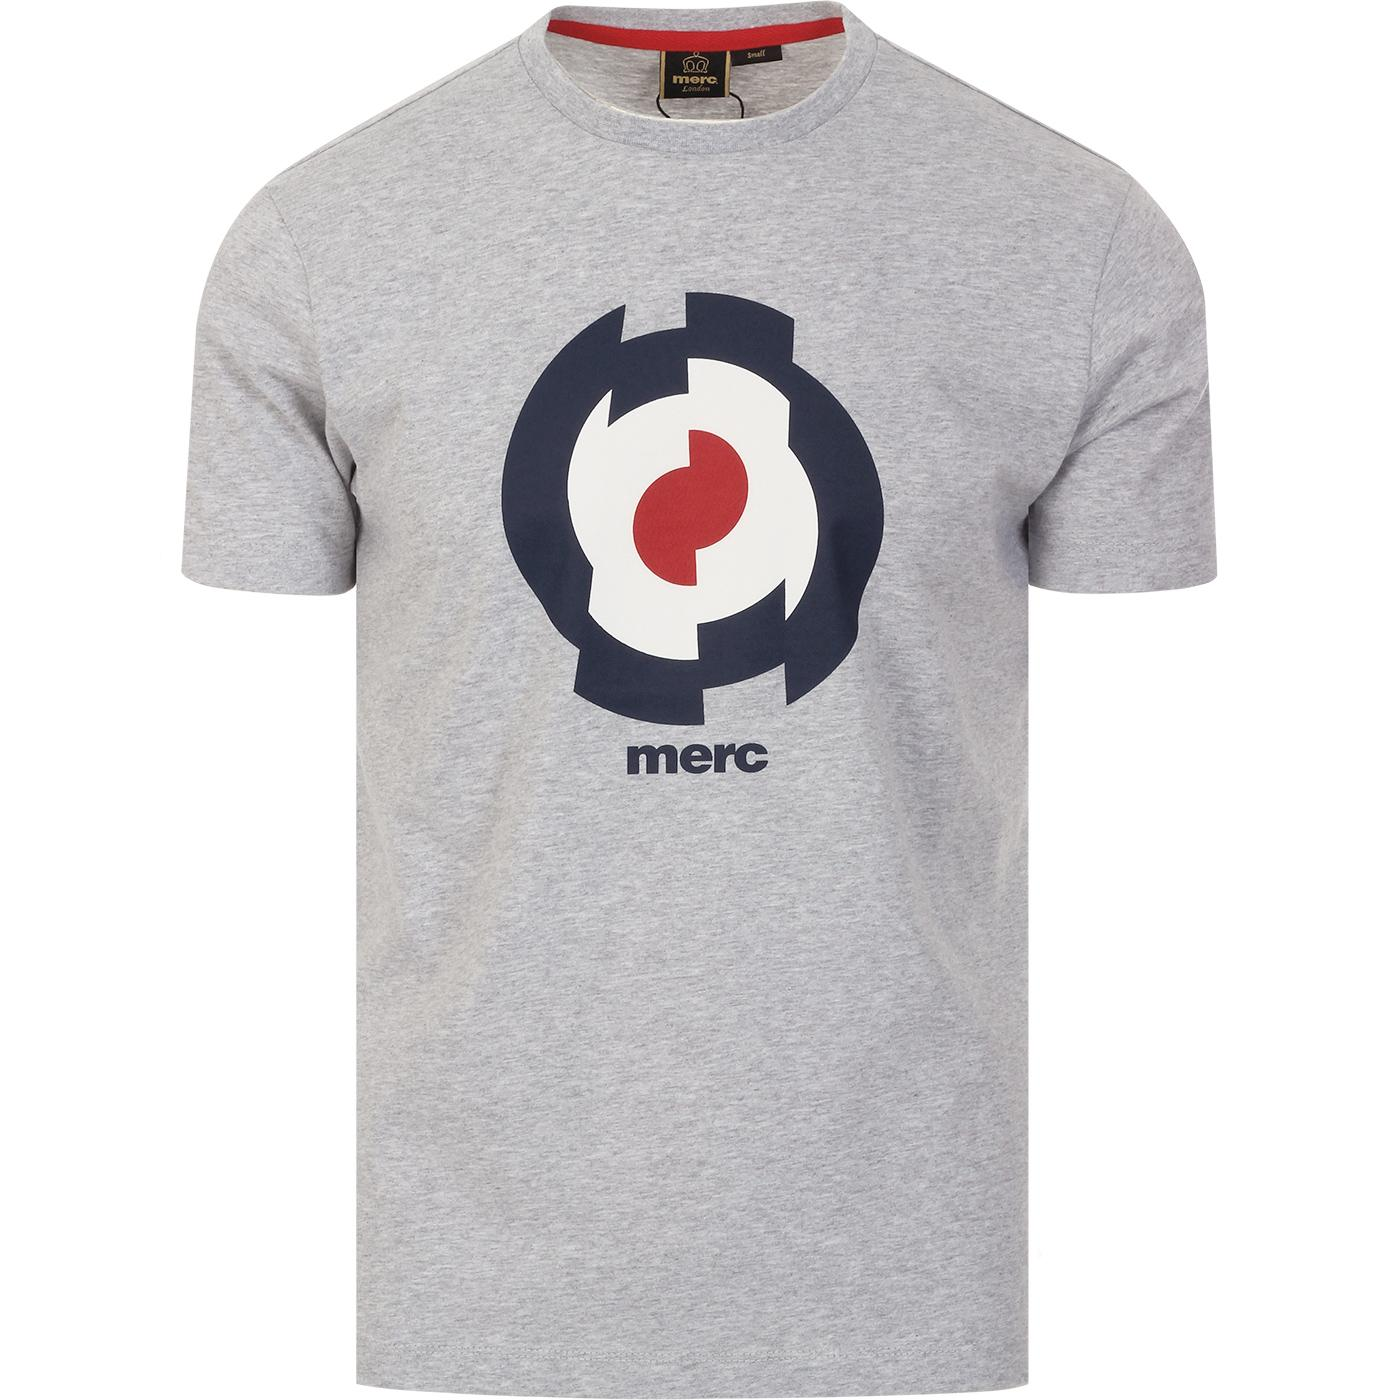 Gunson MERC Abstract Mod Target Tee (Light Grey)